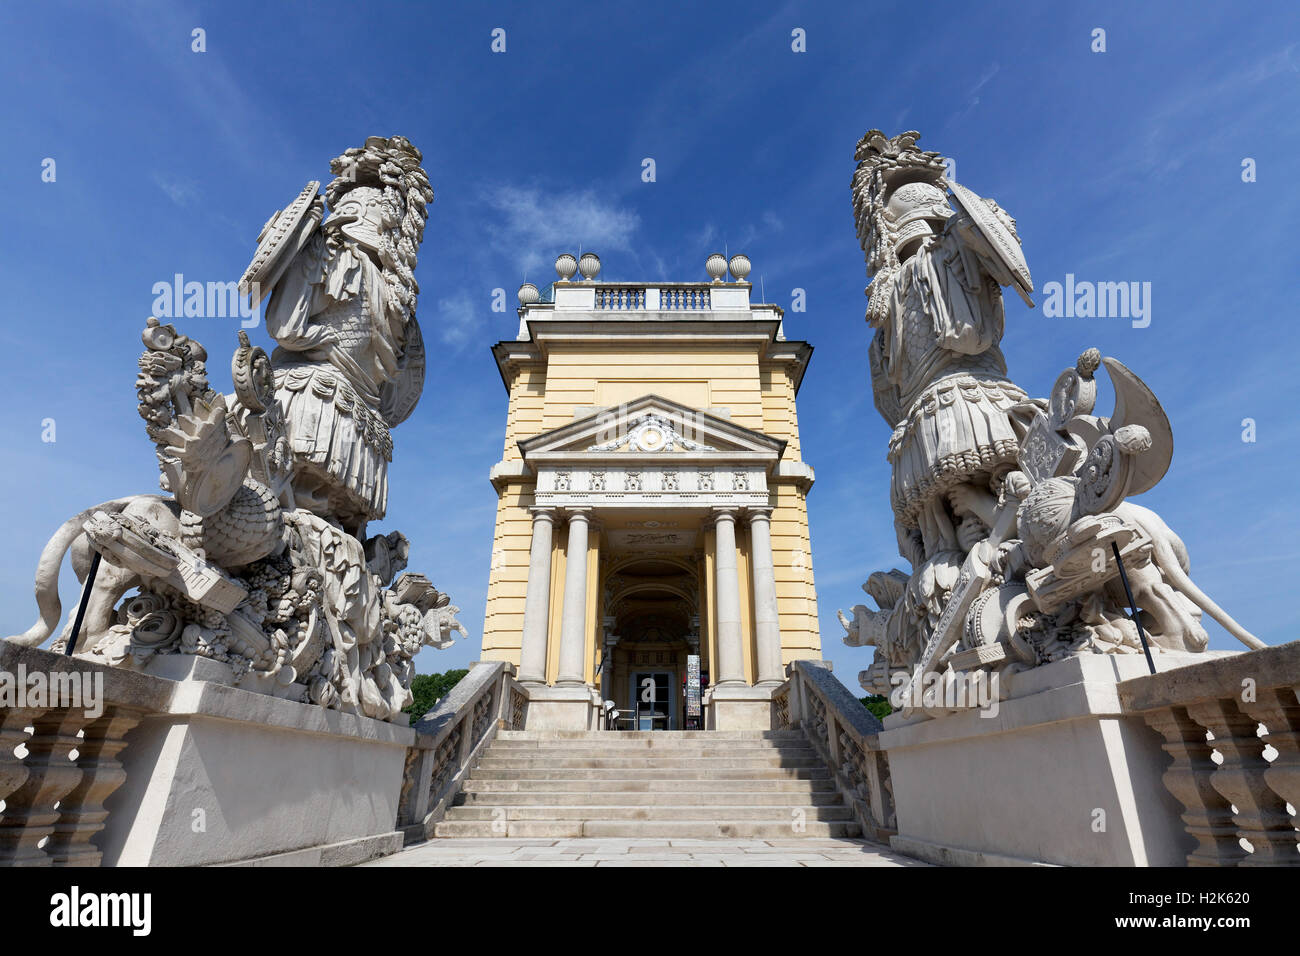 Stairway to Gloriette, ancient Roman trophies and armour, Schloss Schönbrunn, Hietzing, Vienna, Austria - Stock Image